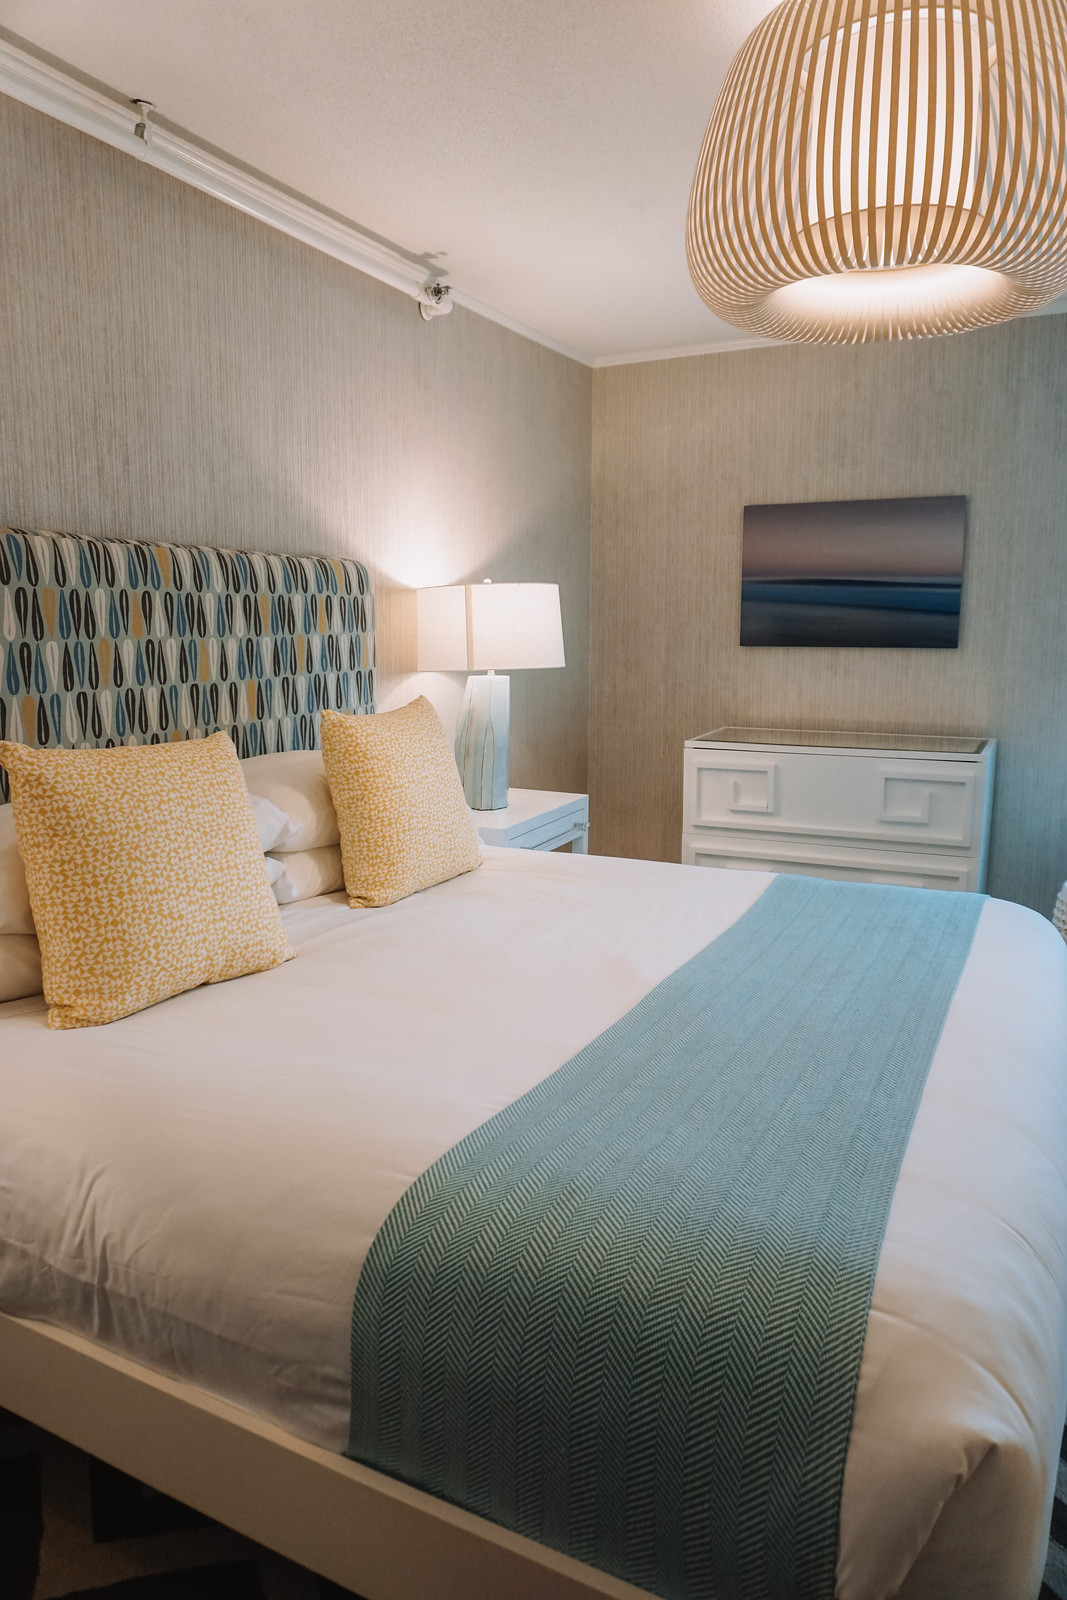 The Attwater Lark Hotels | Where to Stay in Newport | 48 Hours in Newport Itinerary | A First Timer's Guide to 2 Days in Newport Rhode Island | What to do in Newport | Newport Travel Guide | Best Things to do in Newport | Best Places to Visit in Newport